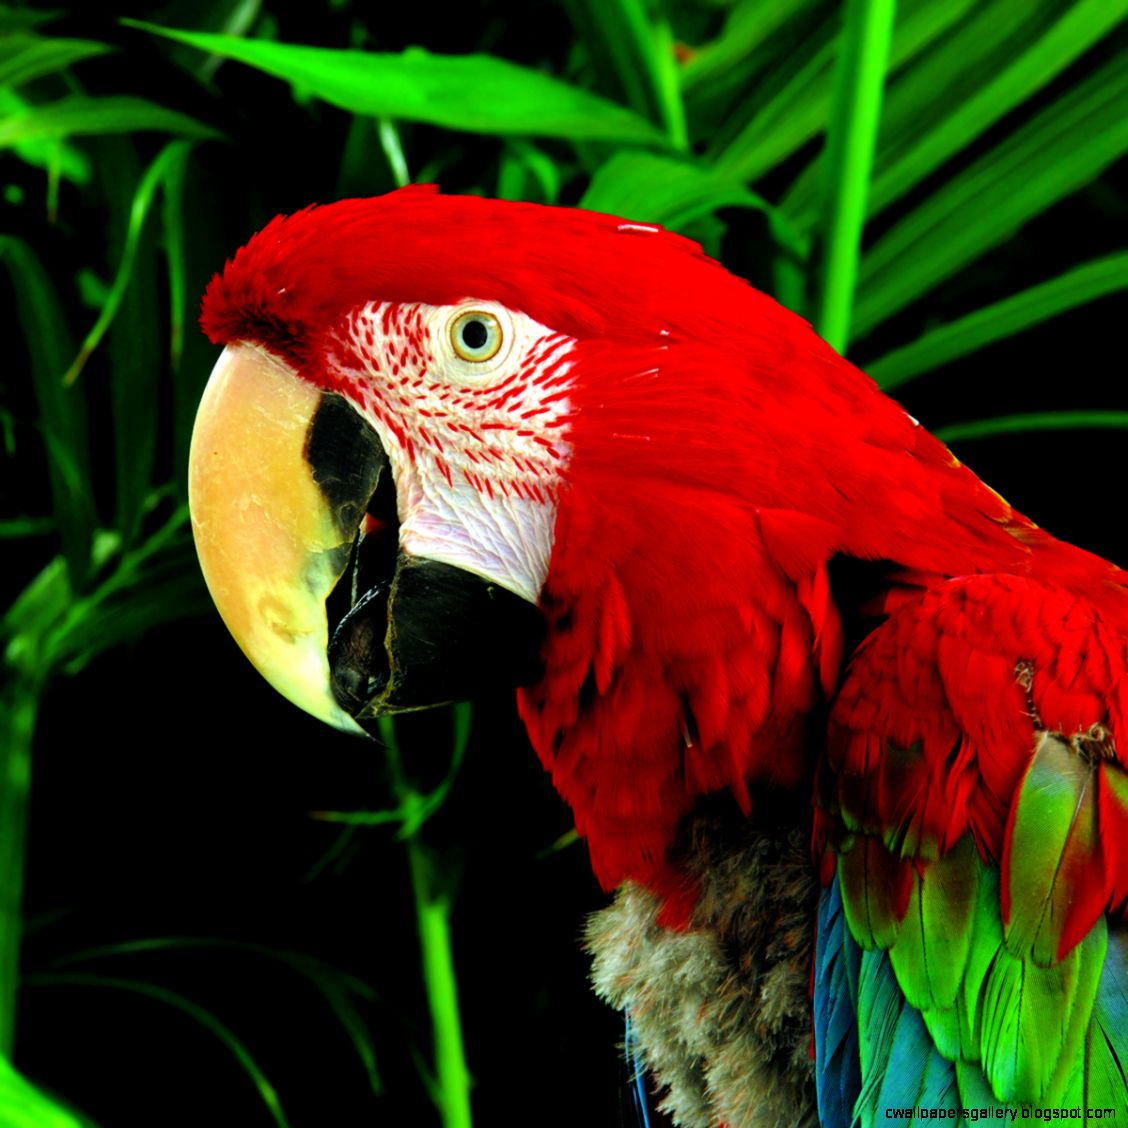 Rainforest animals and plants facts wallpapers gallery - Amazon rainforest animals wallpaper ...